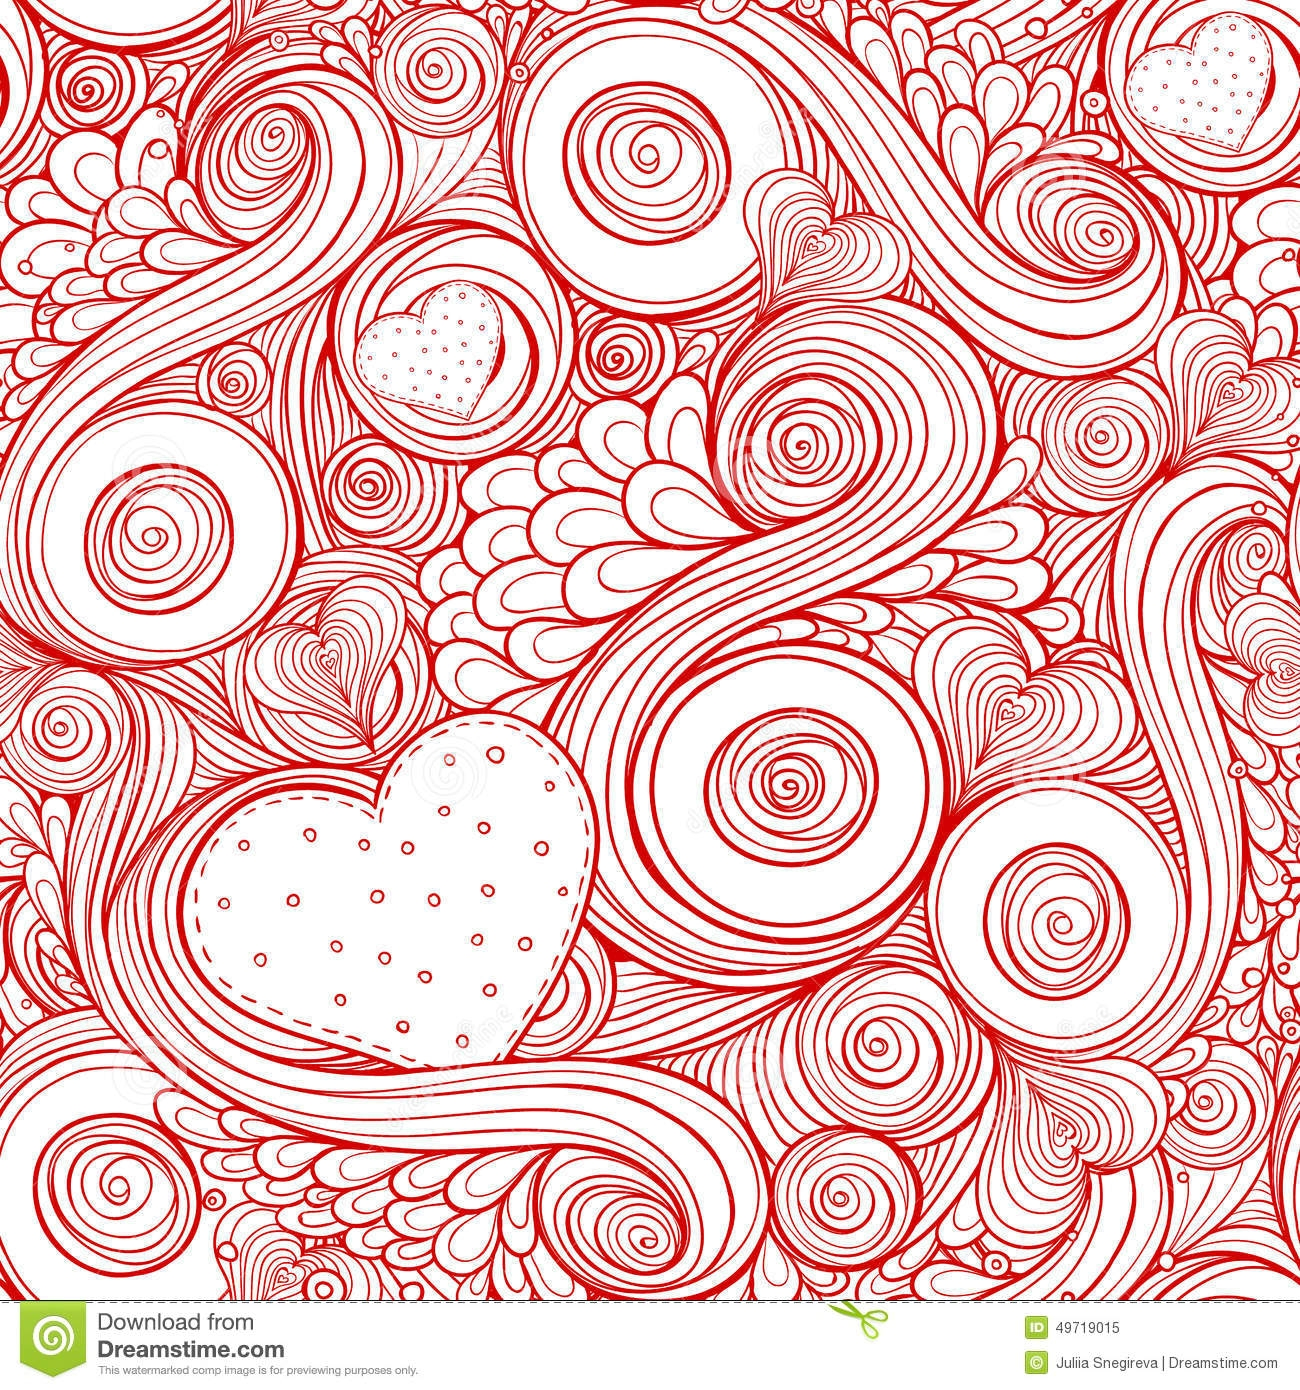 23 Heart Shape Coloring Pages Images | FREE COLORING PAGES - Part 2